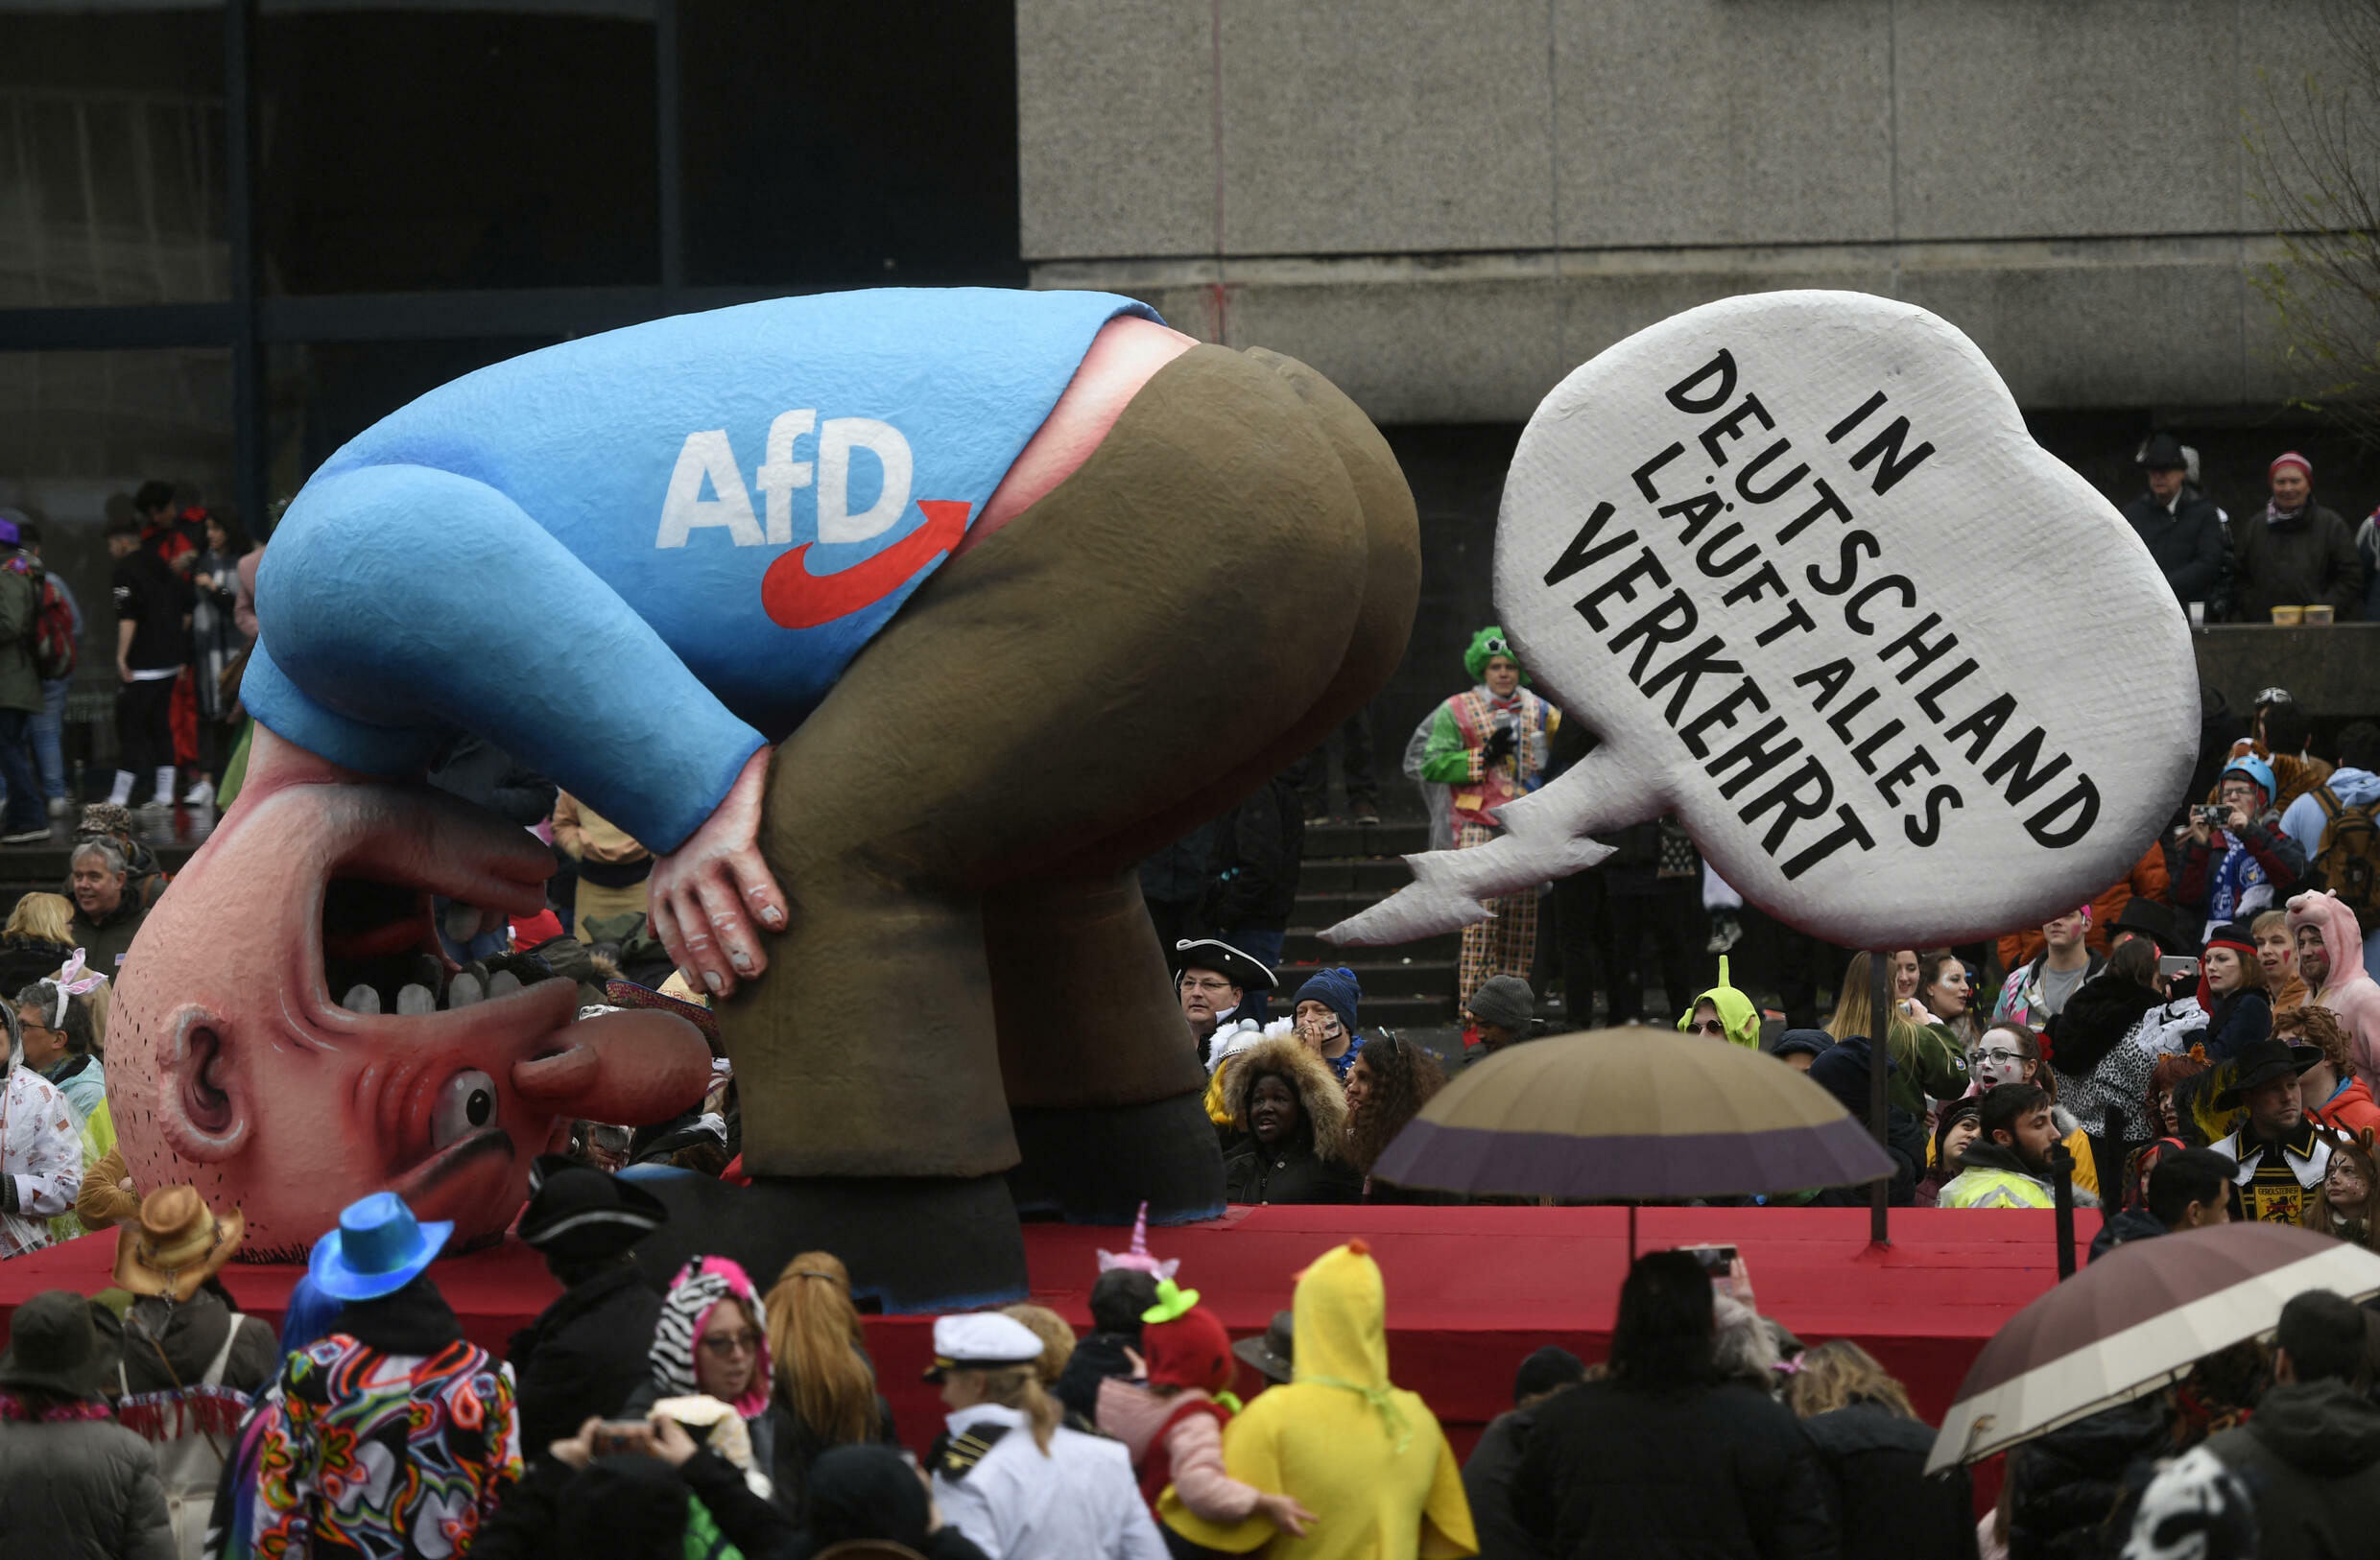 """""""Everything goes upside down in Germany,"""" says a supporter of the far-right AfD party at a carnival parade in Duesseldorf in February 2020."""